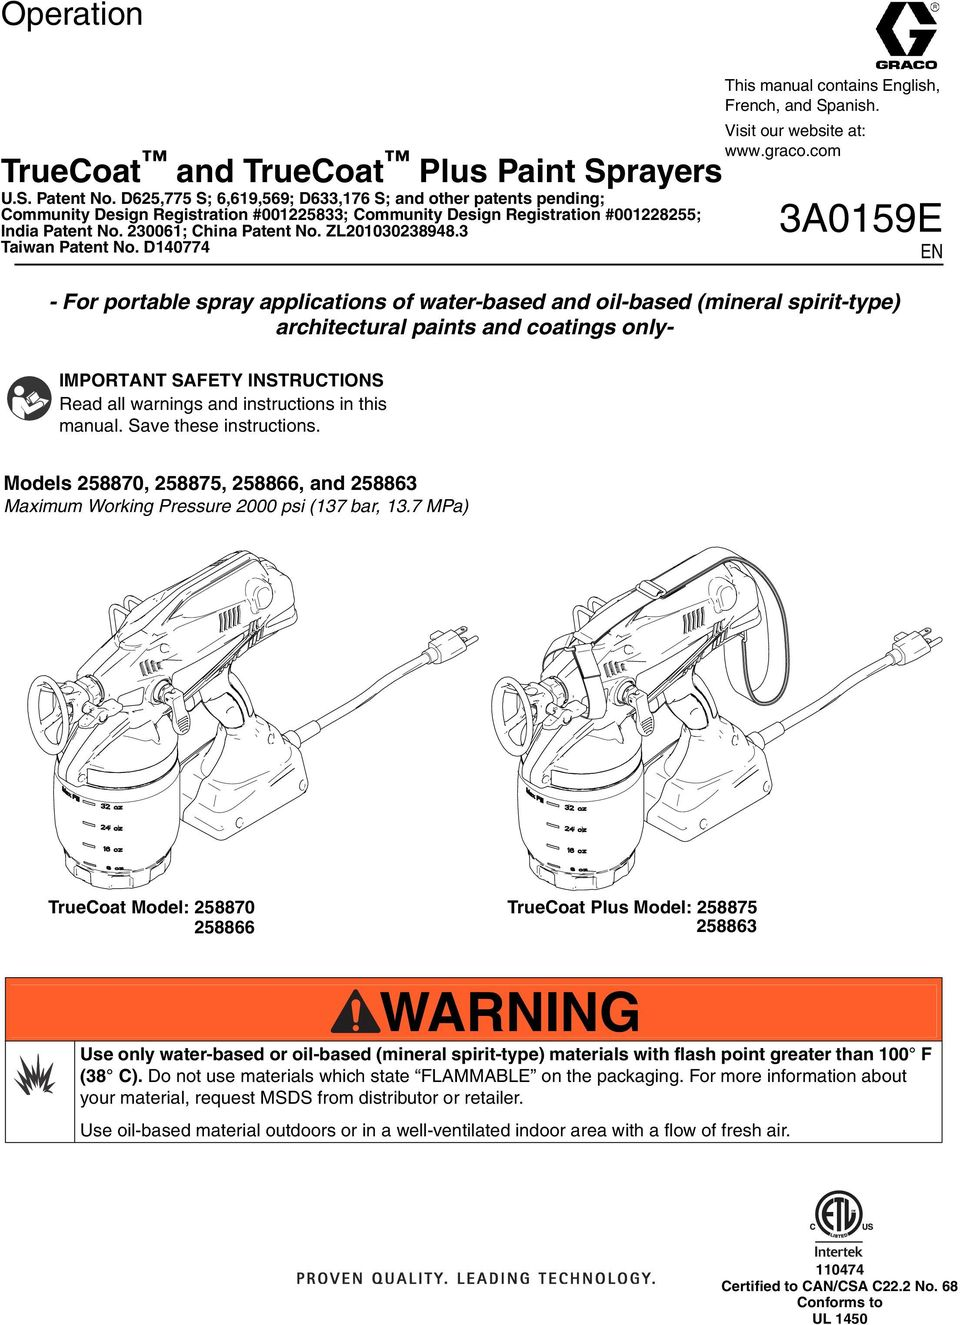 ZL201030238948.3 Taiwan Patent No. D140774 This manual contains English, French, and Spanish. Visit our website at: www.graco.